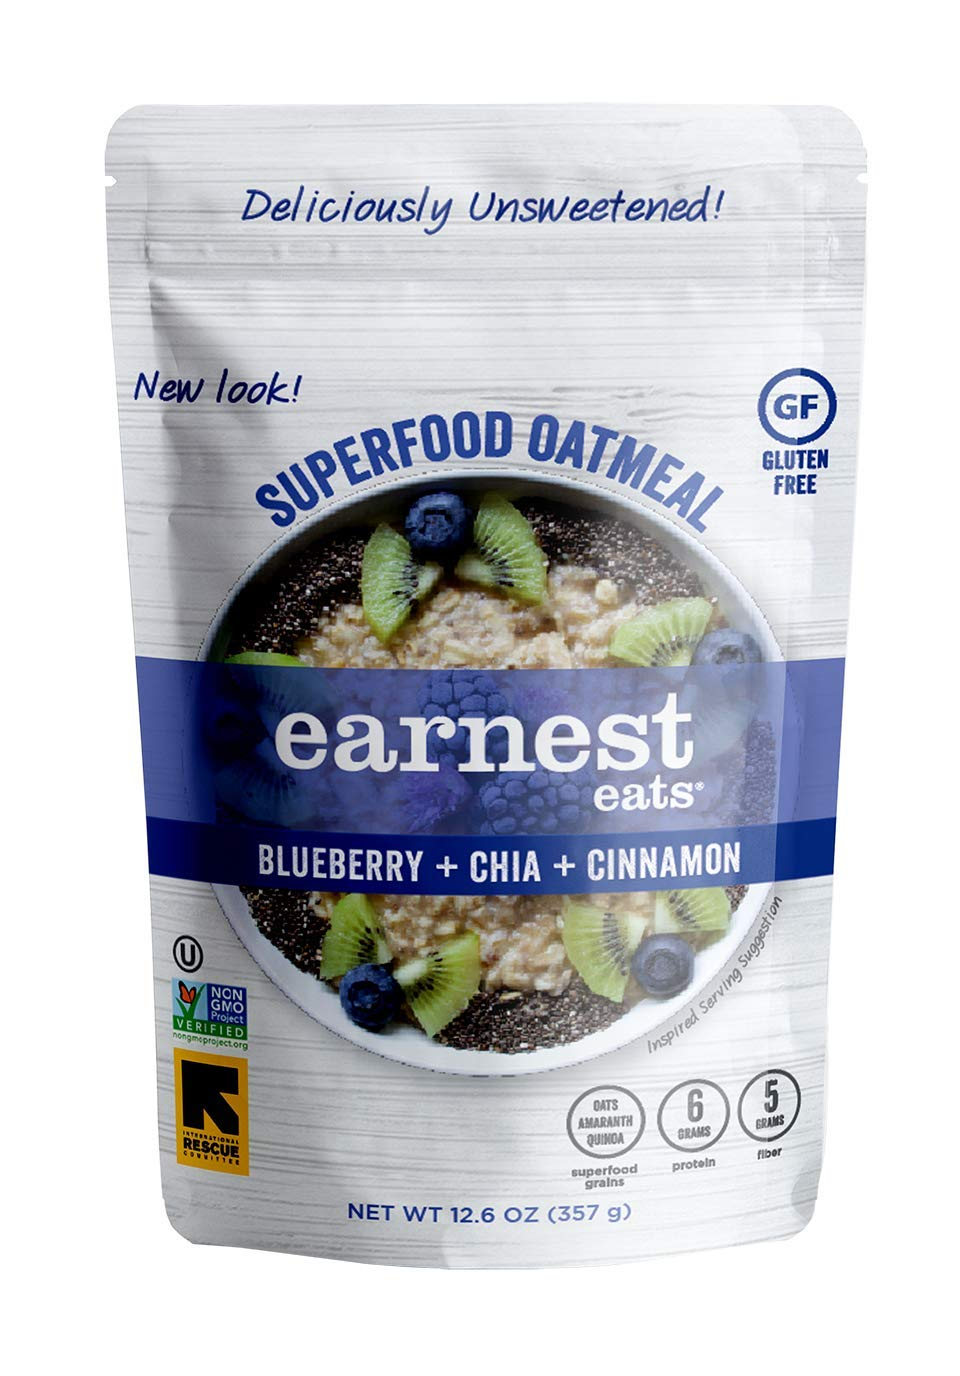 Earnest Eats Superfood Hot Cereal with Quinoa, Oats & Amaranth, Vegan, Gluten Free, Blueberry Chia Blend, 12.6oz Bag, Pack of 6